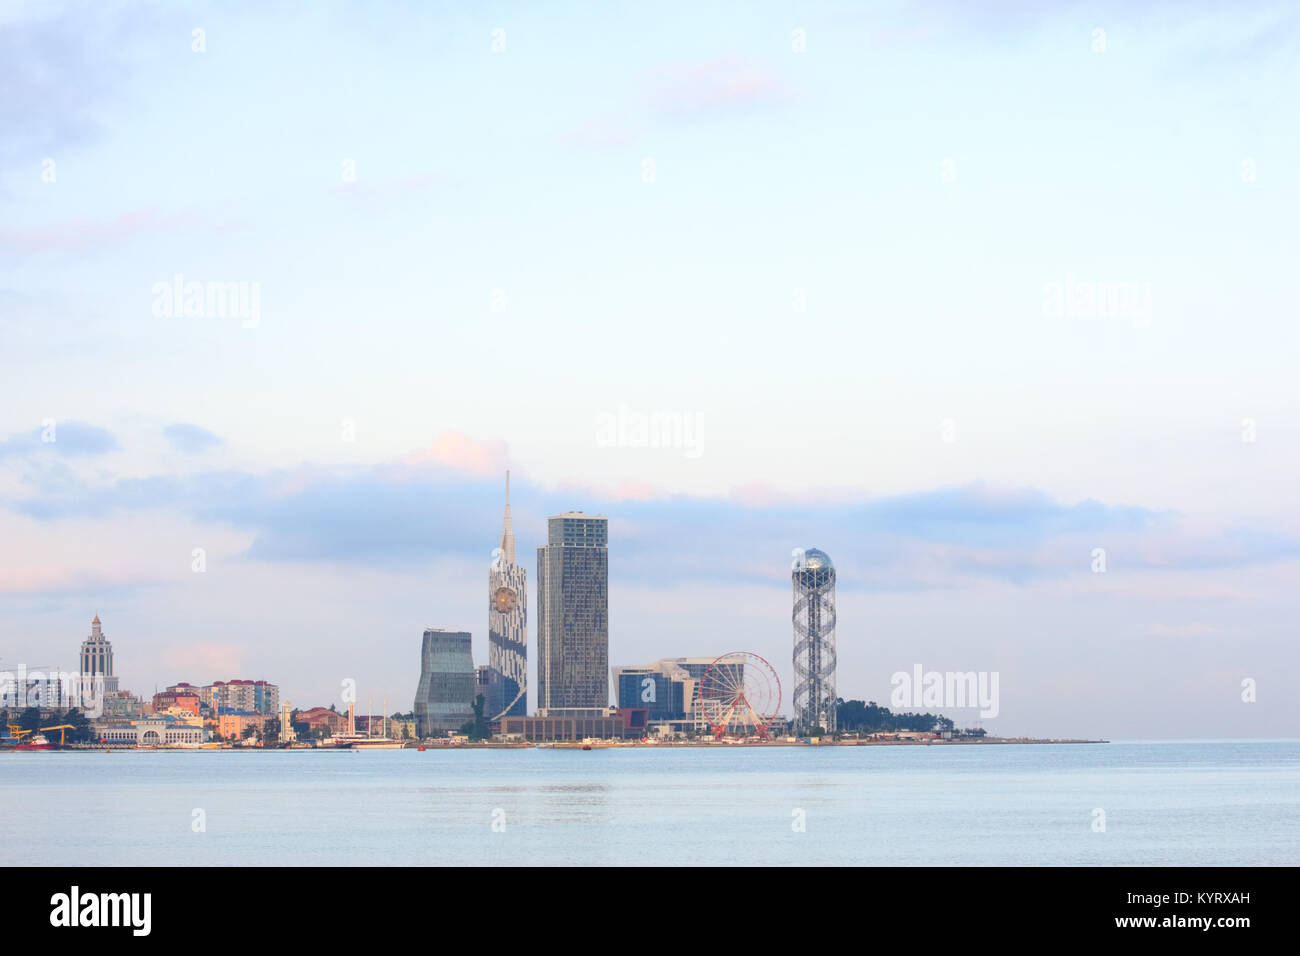 Batumi city skyline, Georgia, a famous resort town on Black Sea coast - Stock Image